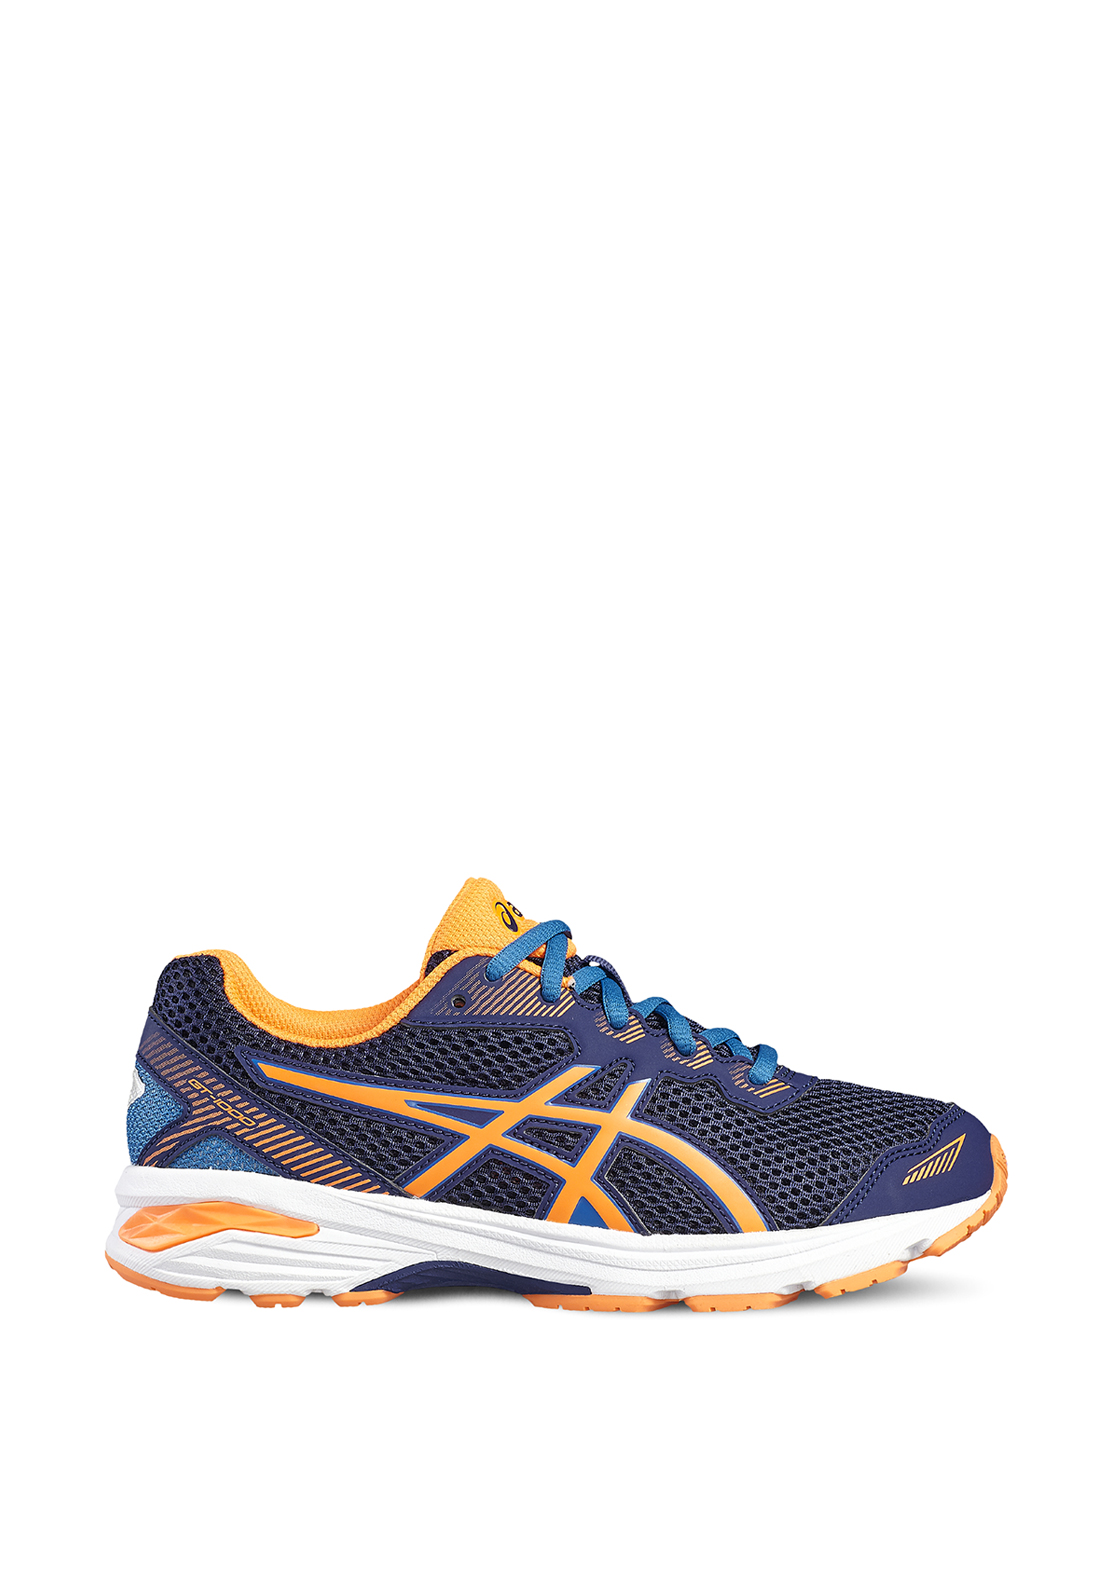 Asics Kids GT-1000 Runners, Navy and Orange